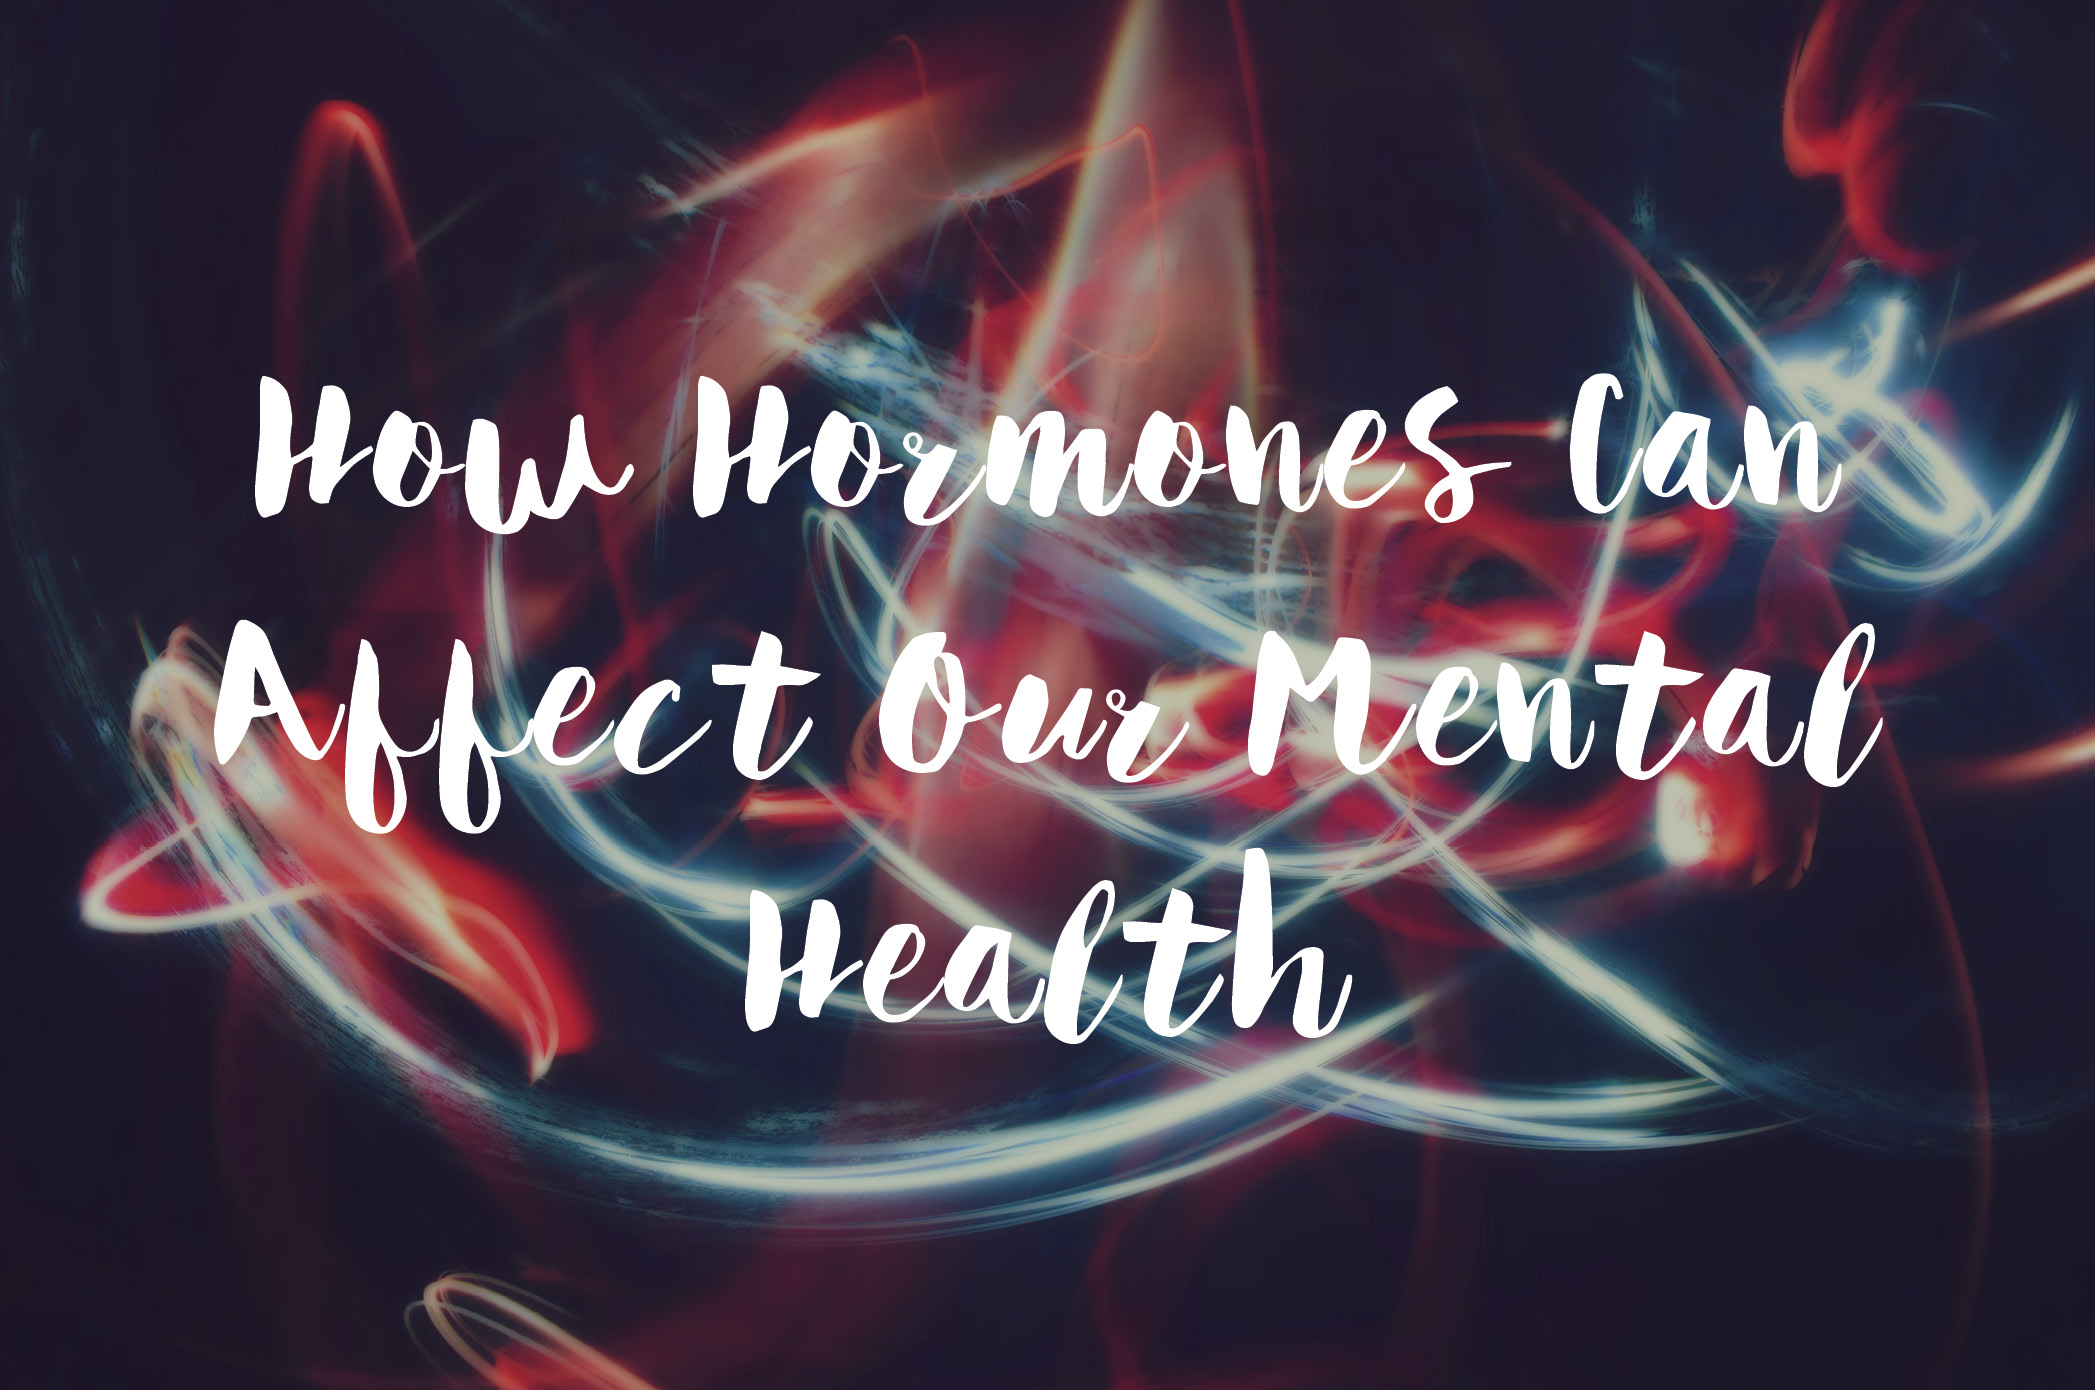 How Hormones Affect Our Mental Health